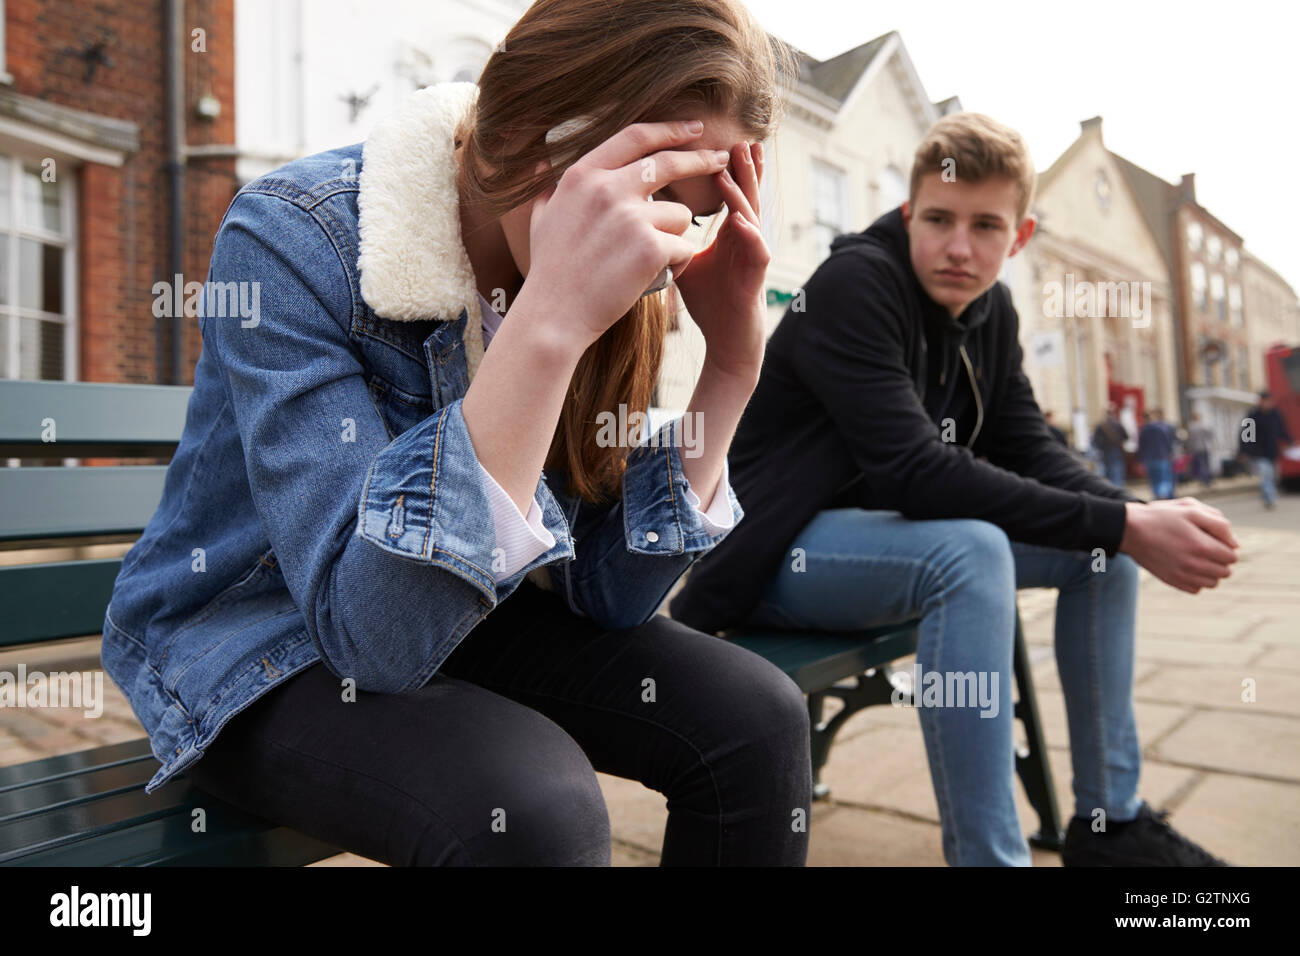 Unhappy Teenage Couple Having Relationship Difficulties - Stock Image